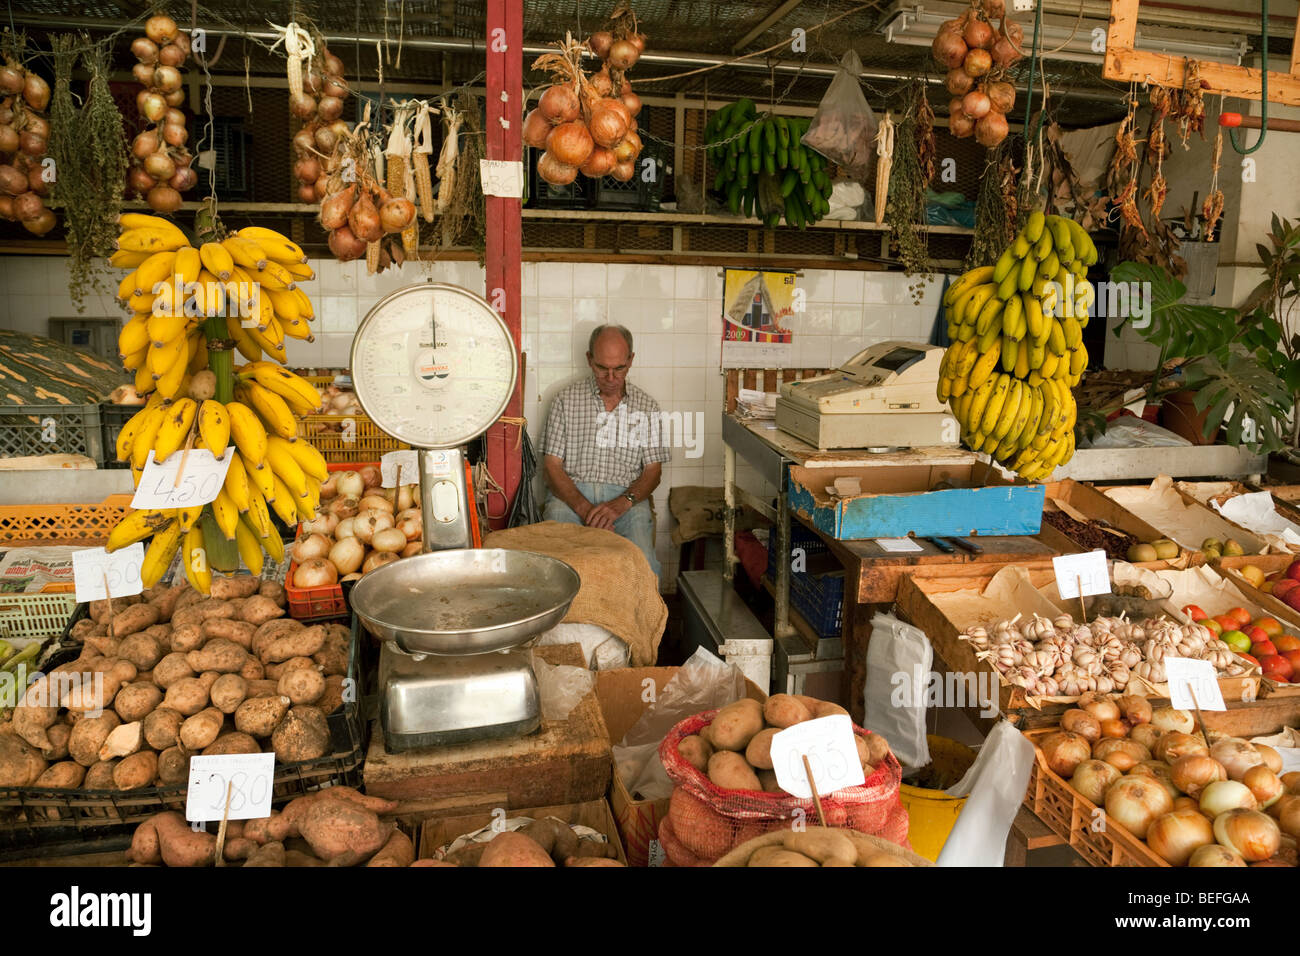 A market stall in the covered market, Funchal, Madeira - Stock Image